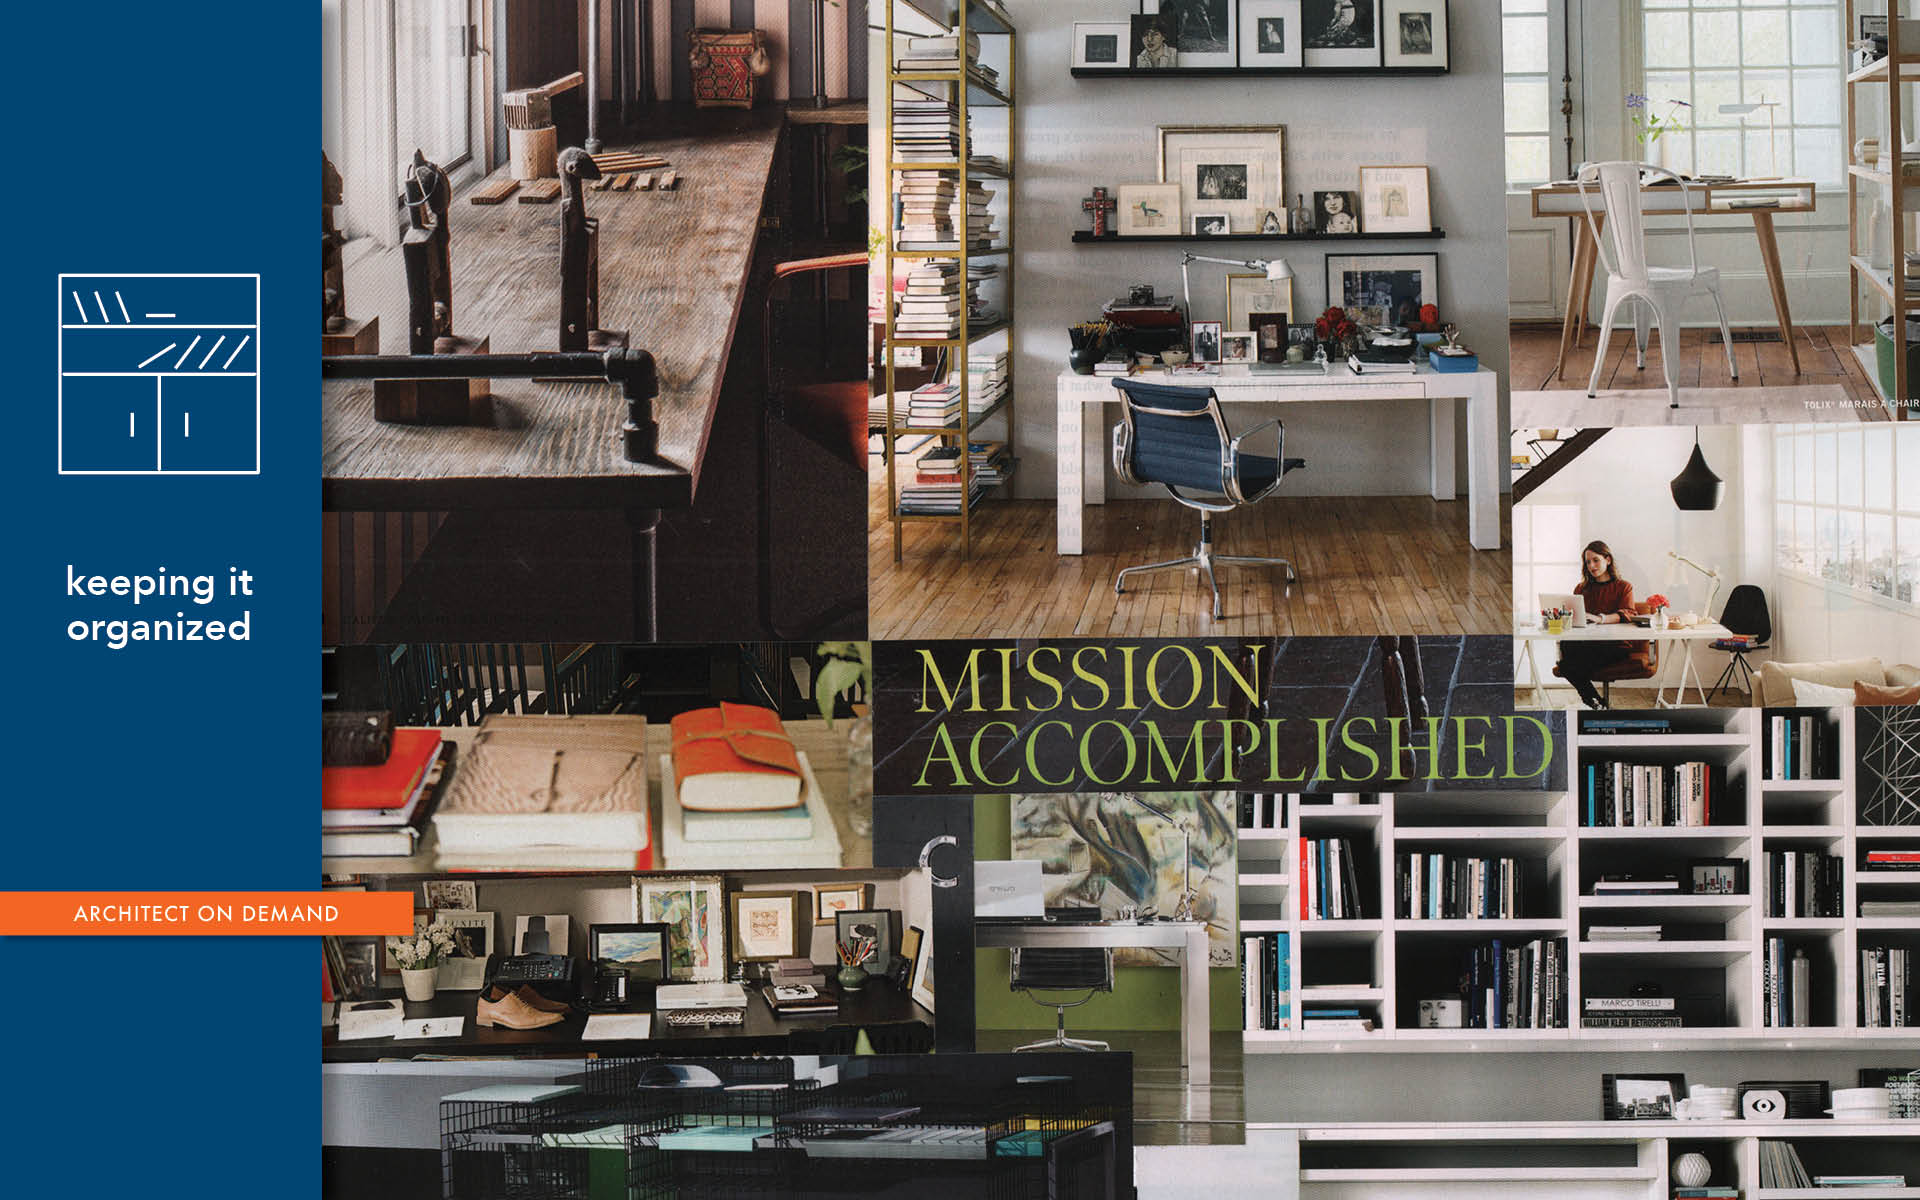 home office, Home Depot, IKEA, architect on demand, advice without strings